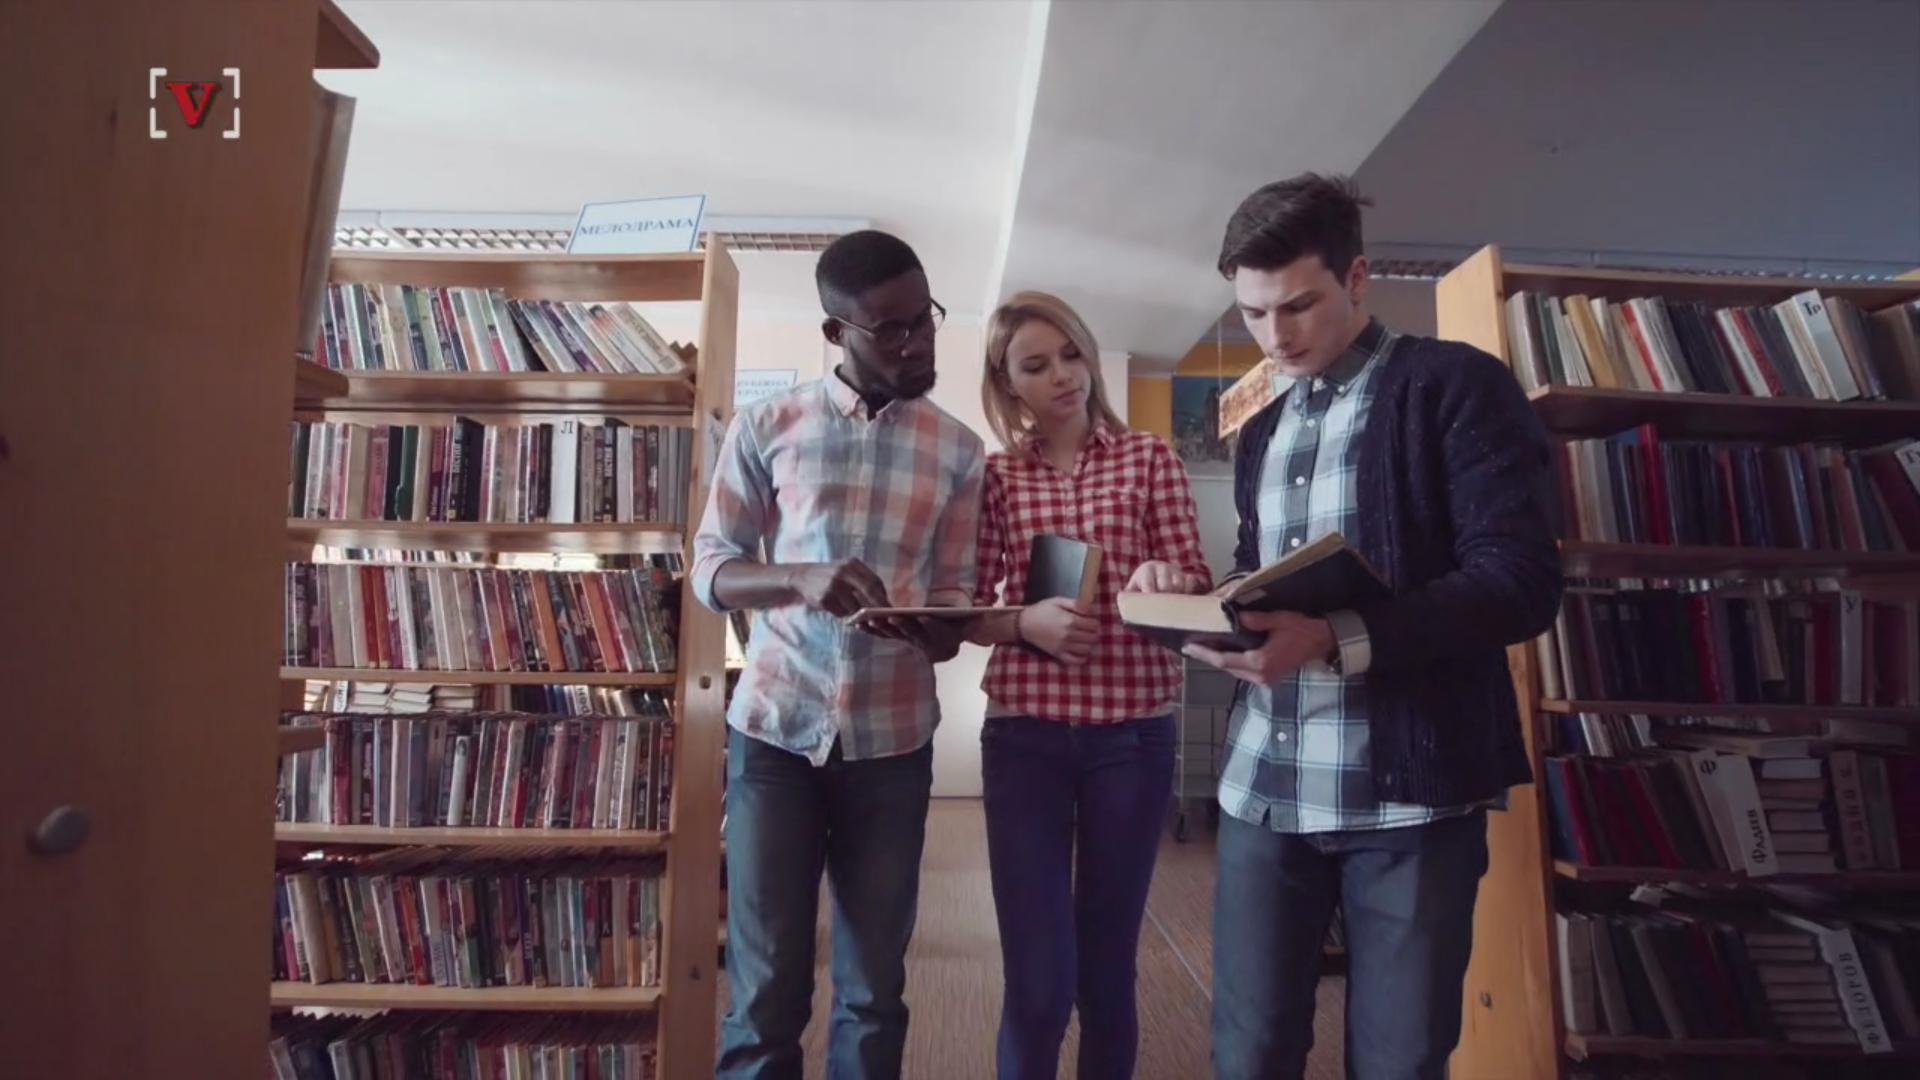 Millennials Use Public Libraries More Than Any Other Adult Generation